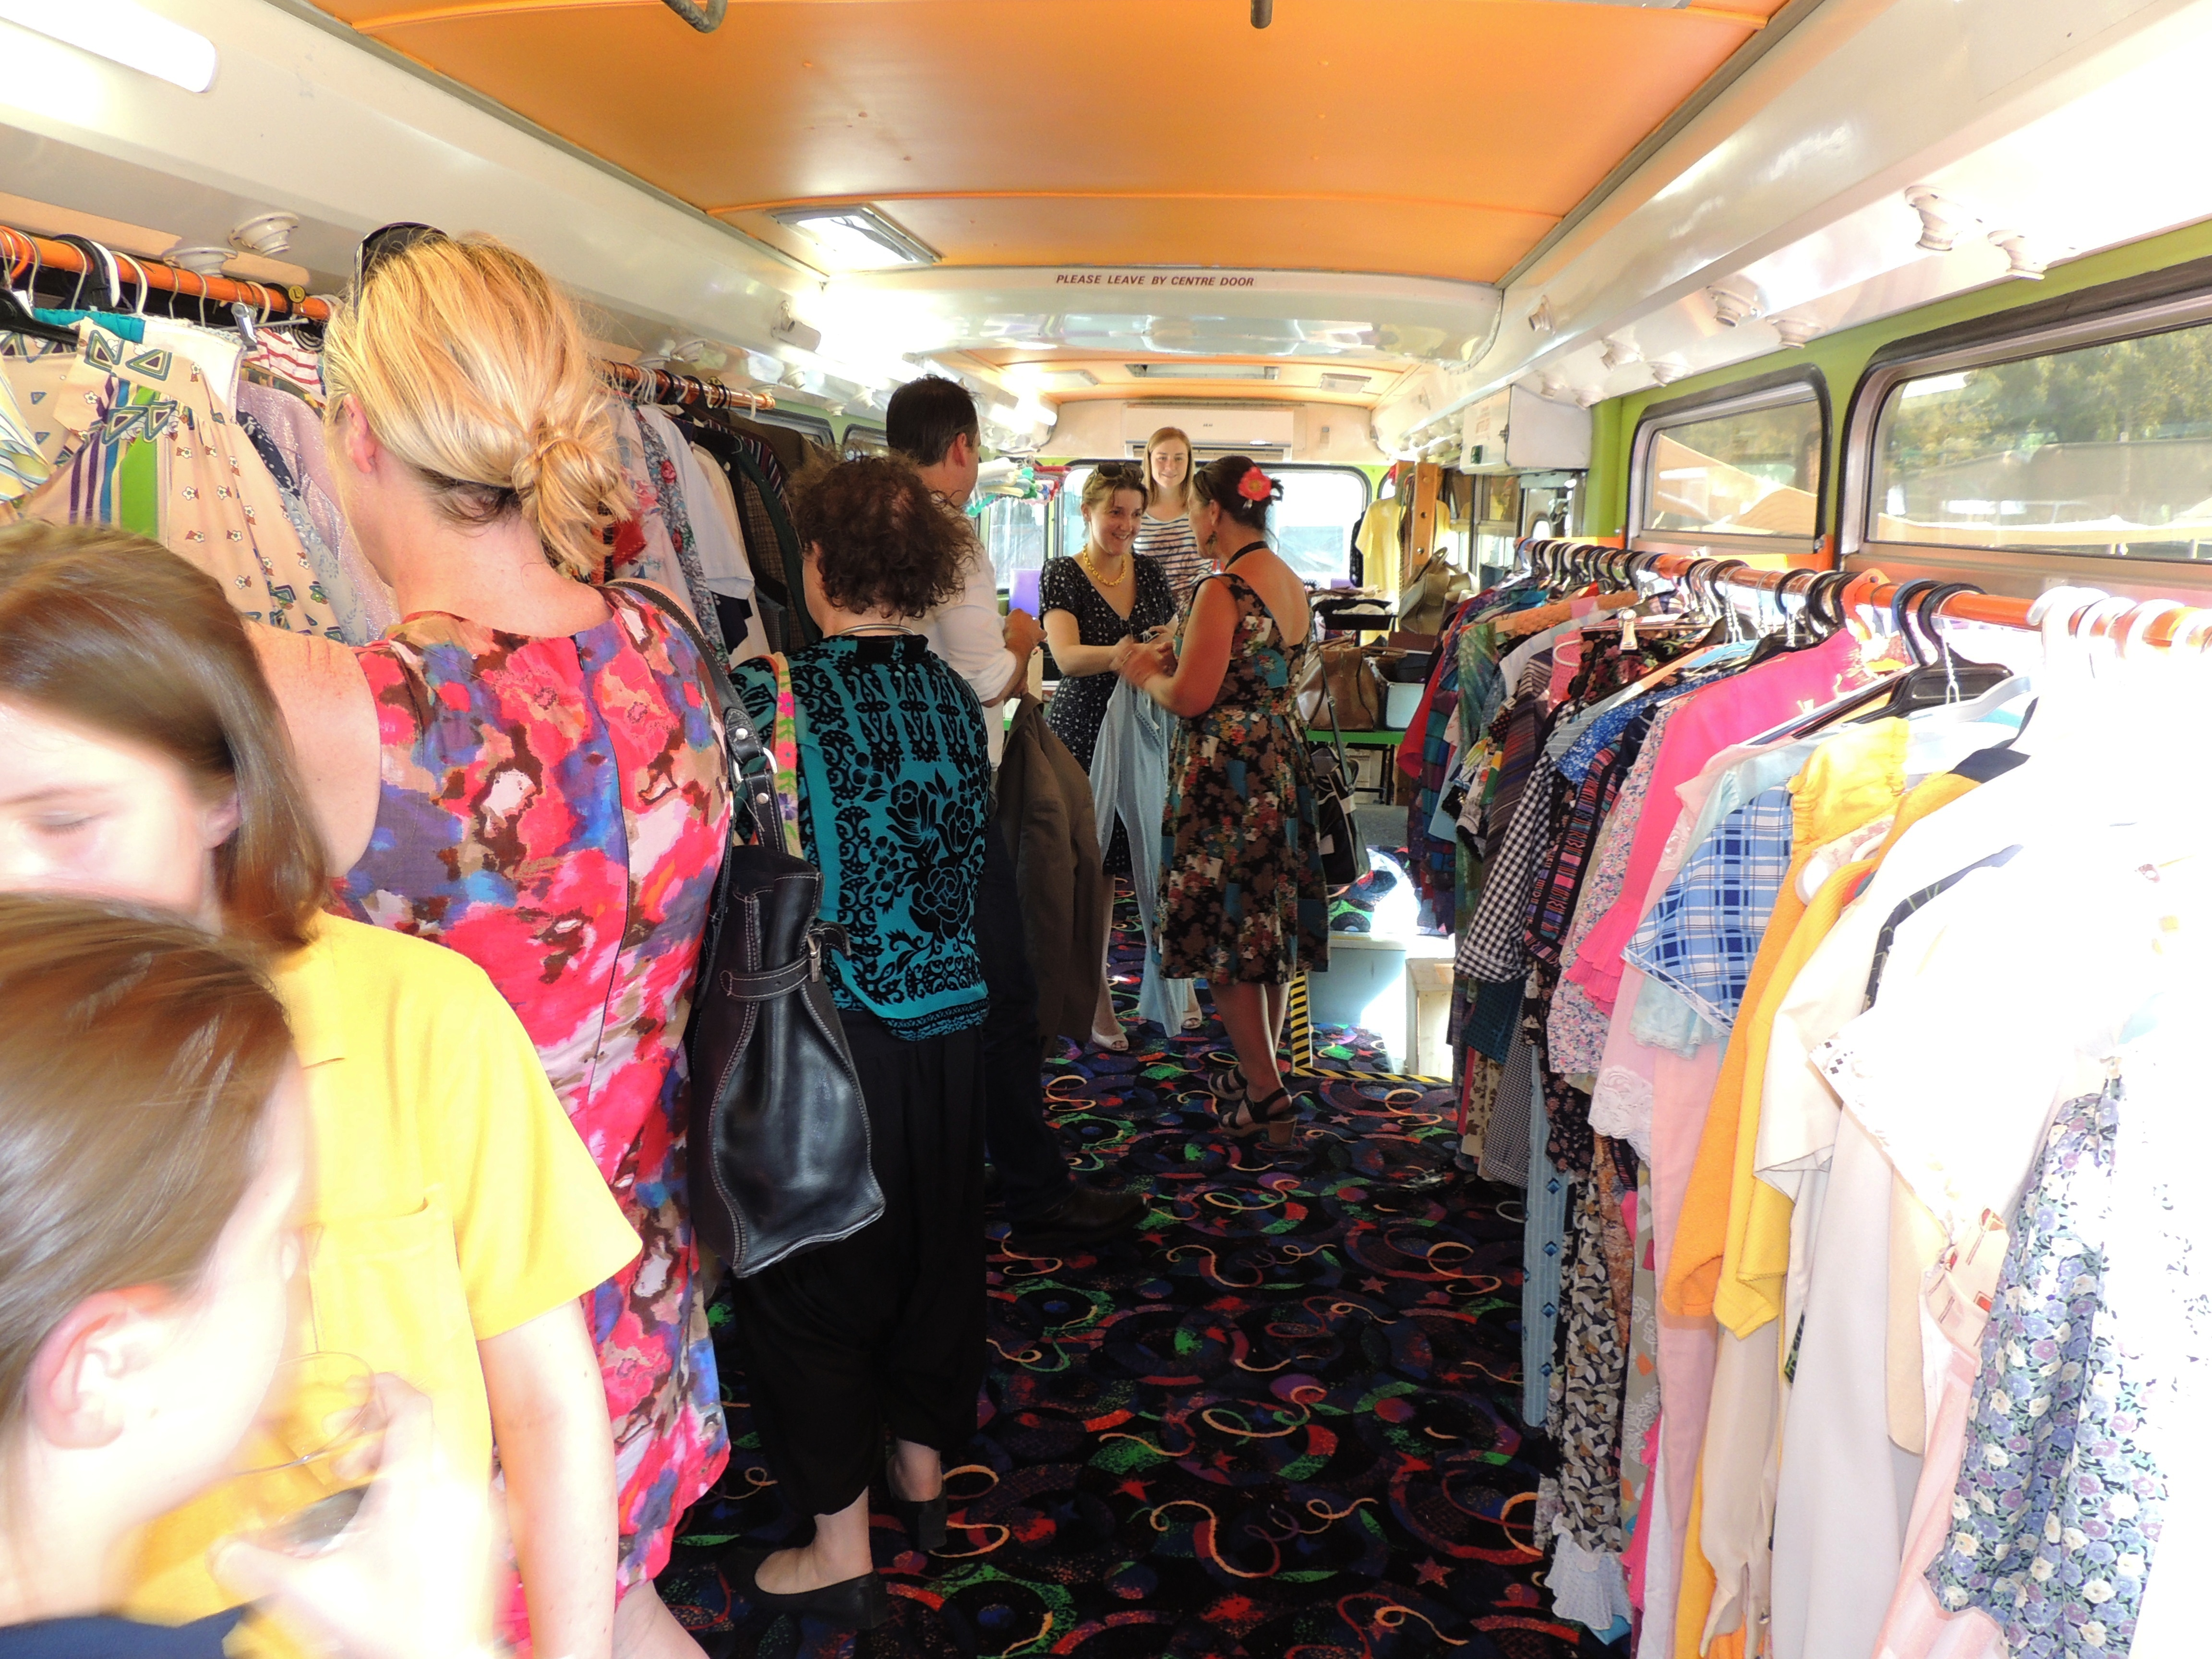 Classic women's clothing stores